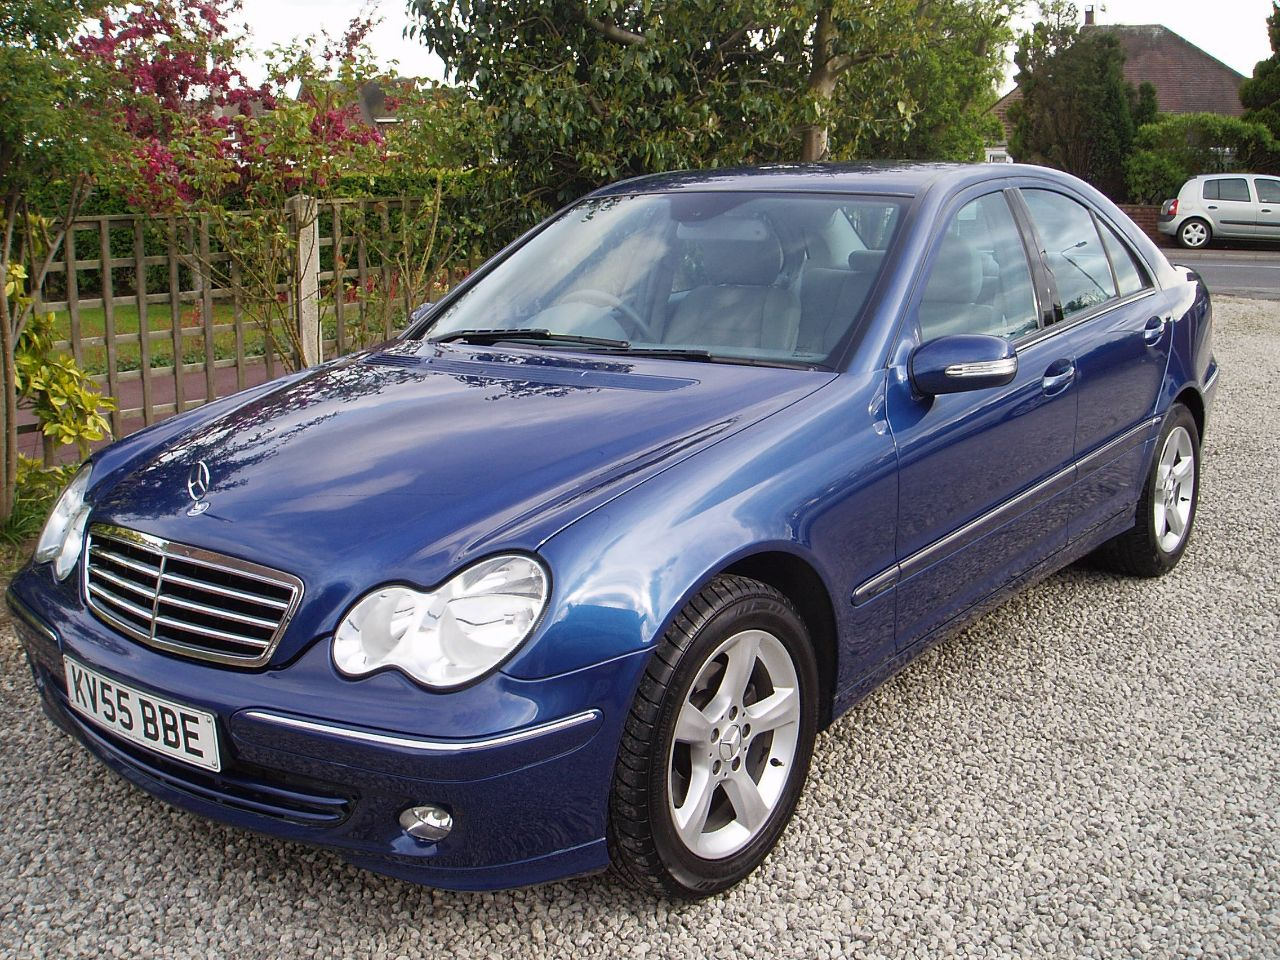 Used MercedesBenz C Class C220 CDI Avantgarde SE 4dr Auto for sale in